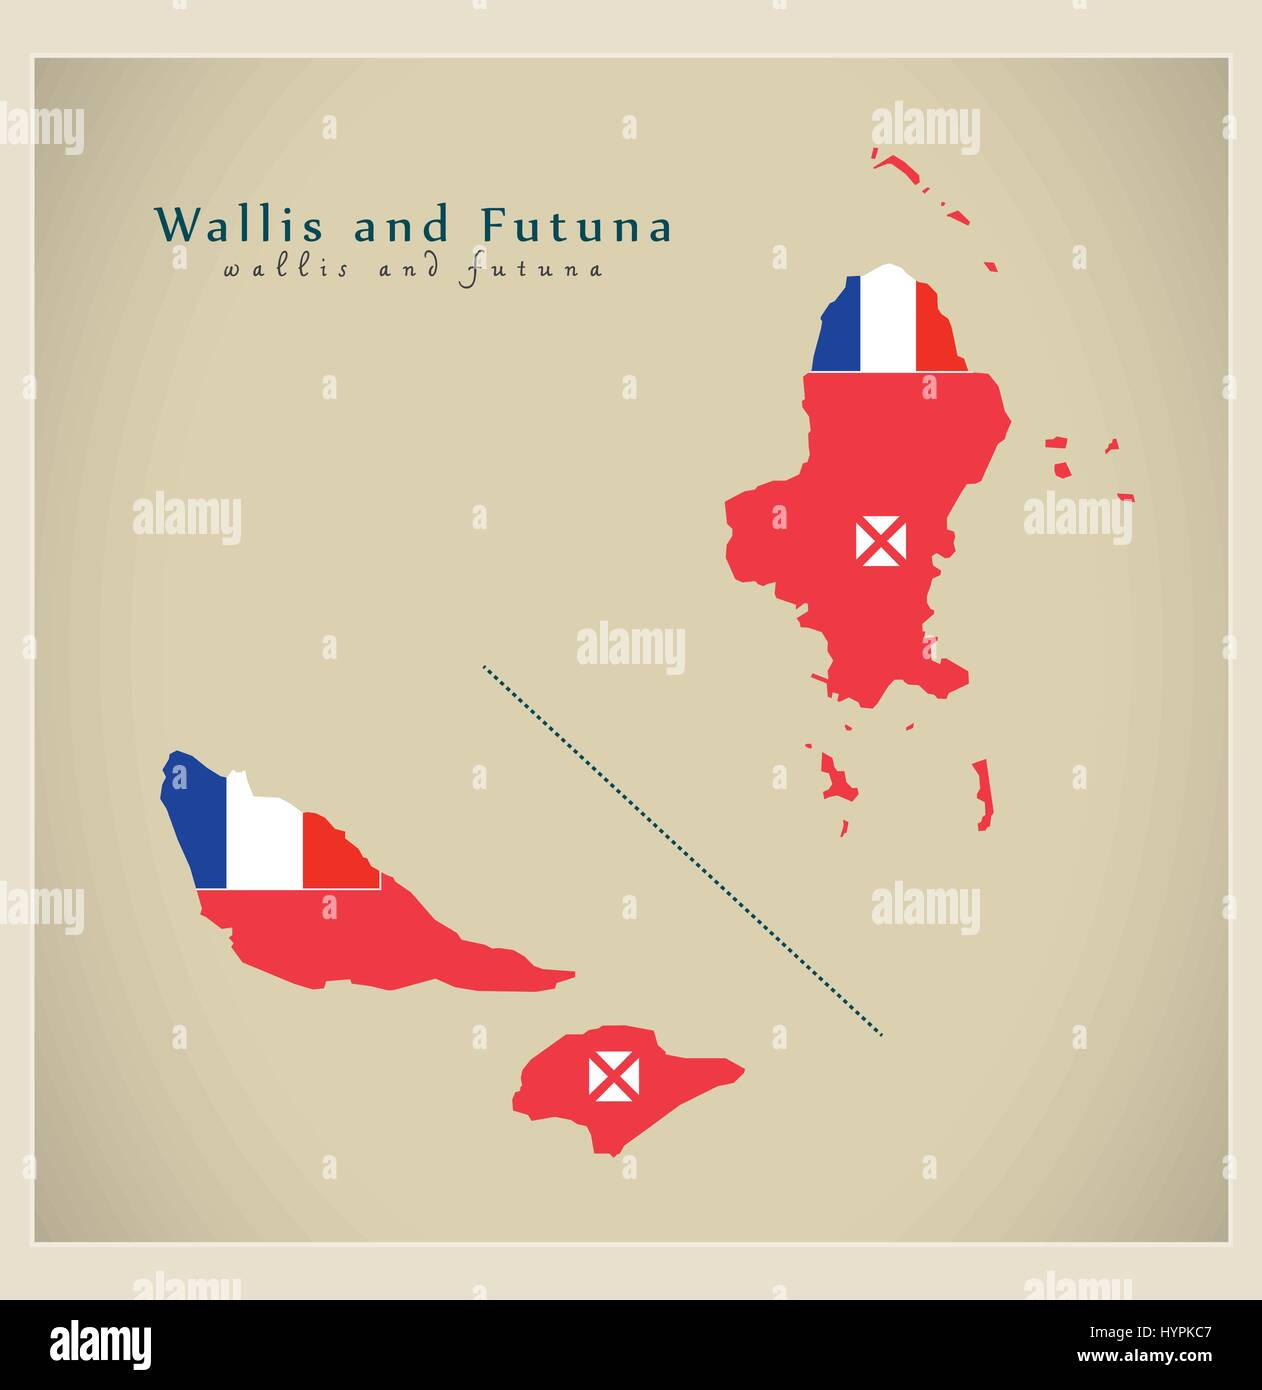 Modern Map - Wallis and Futuna flag colored WF - Stock Image